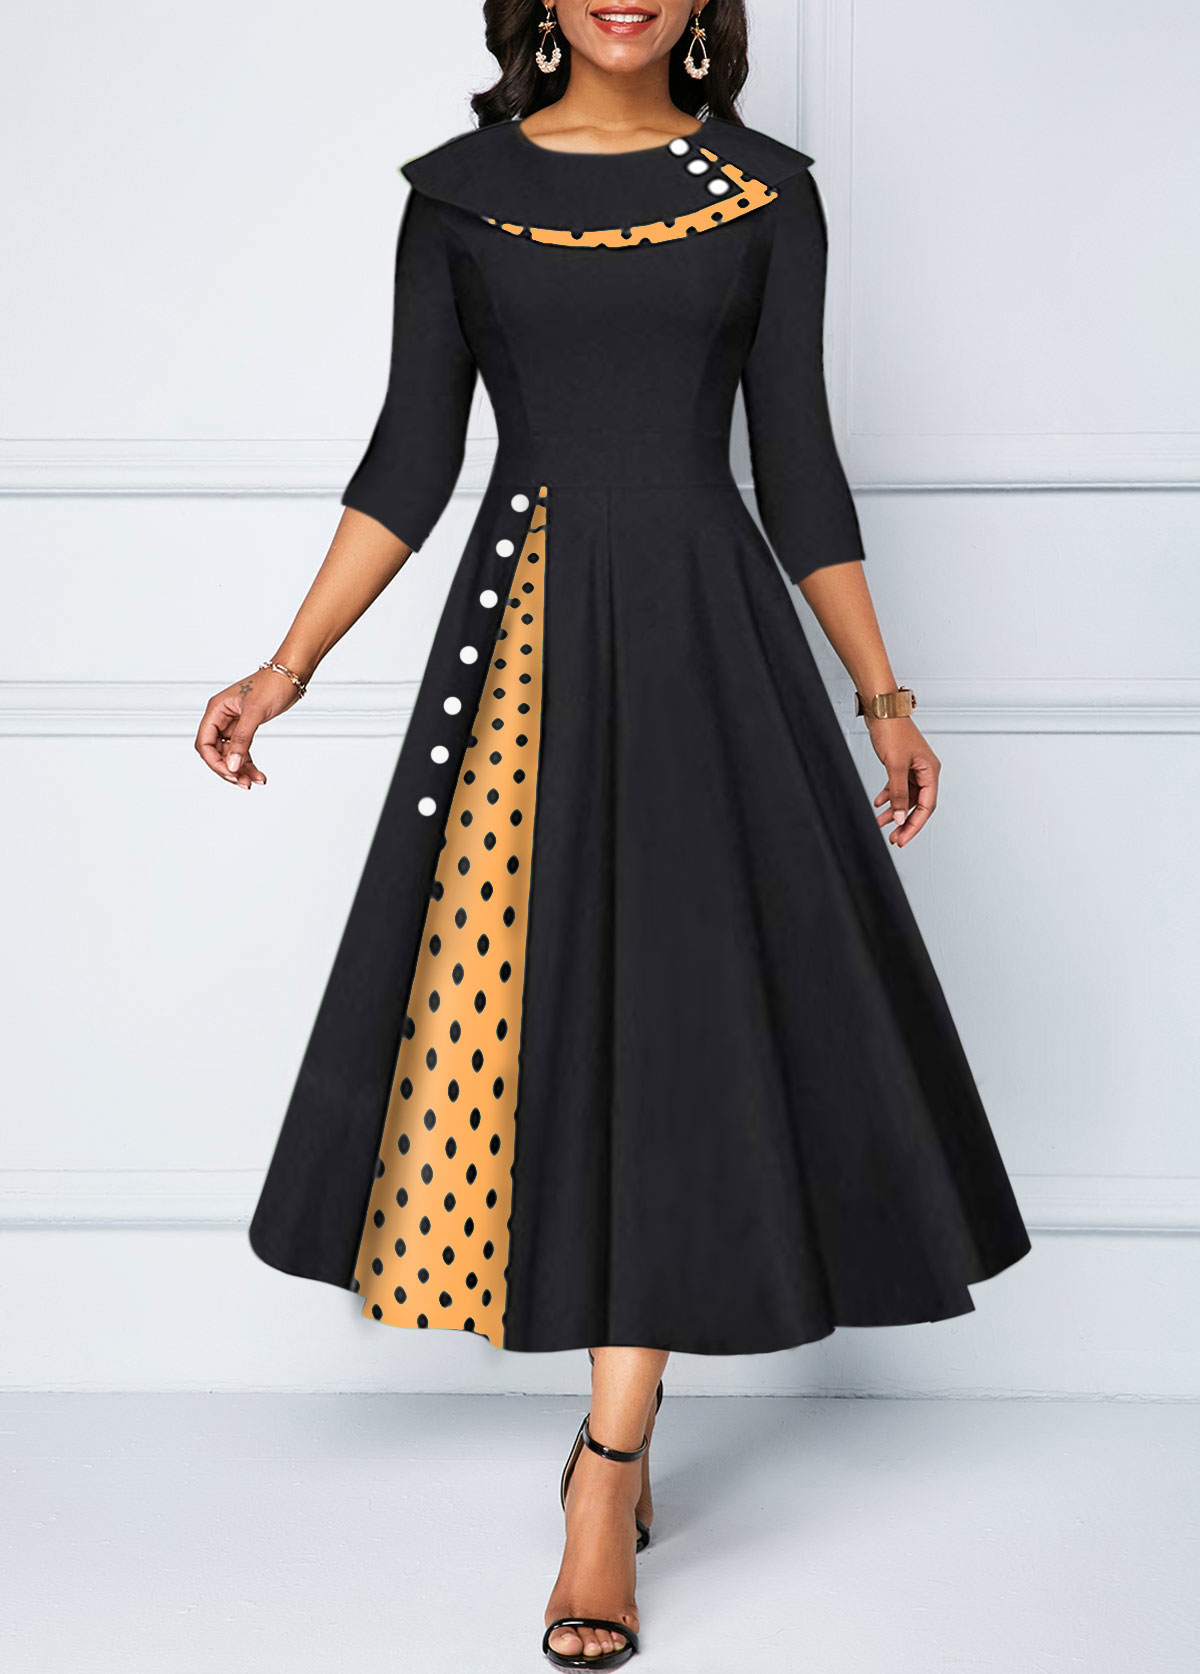 Polka Dot Print Button Detail Dress